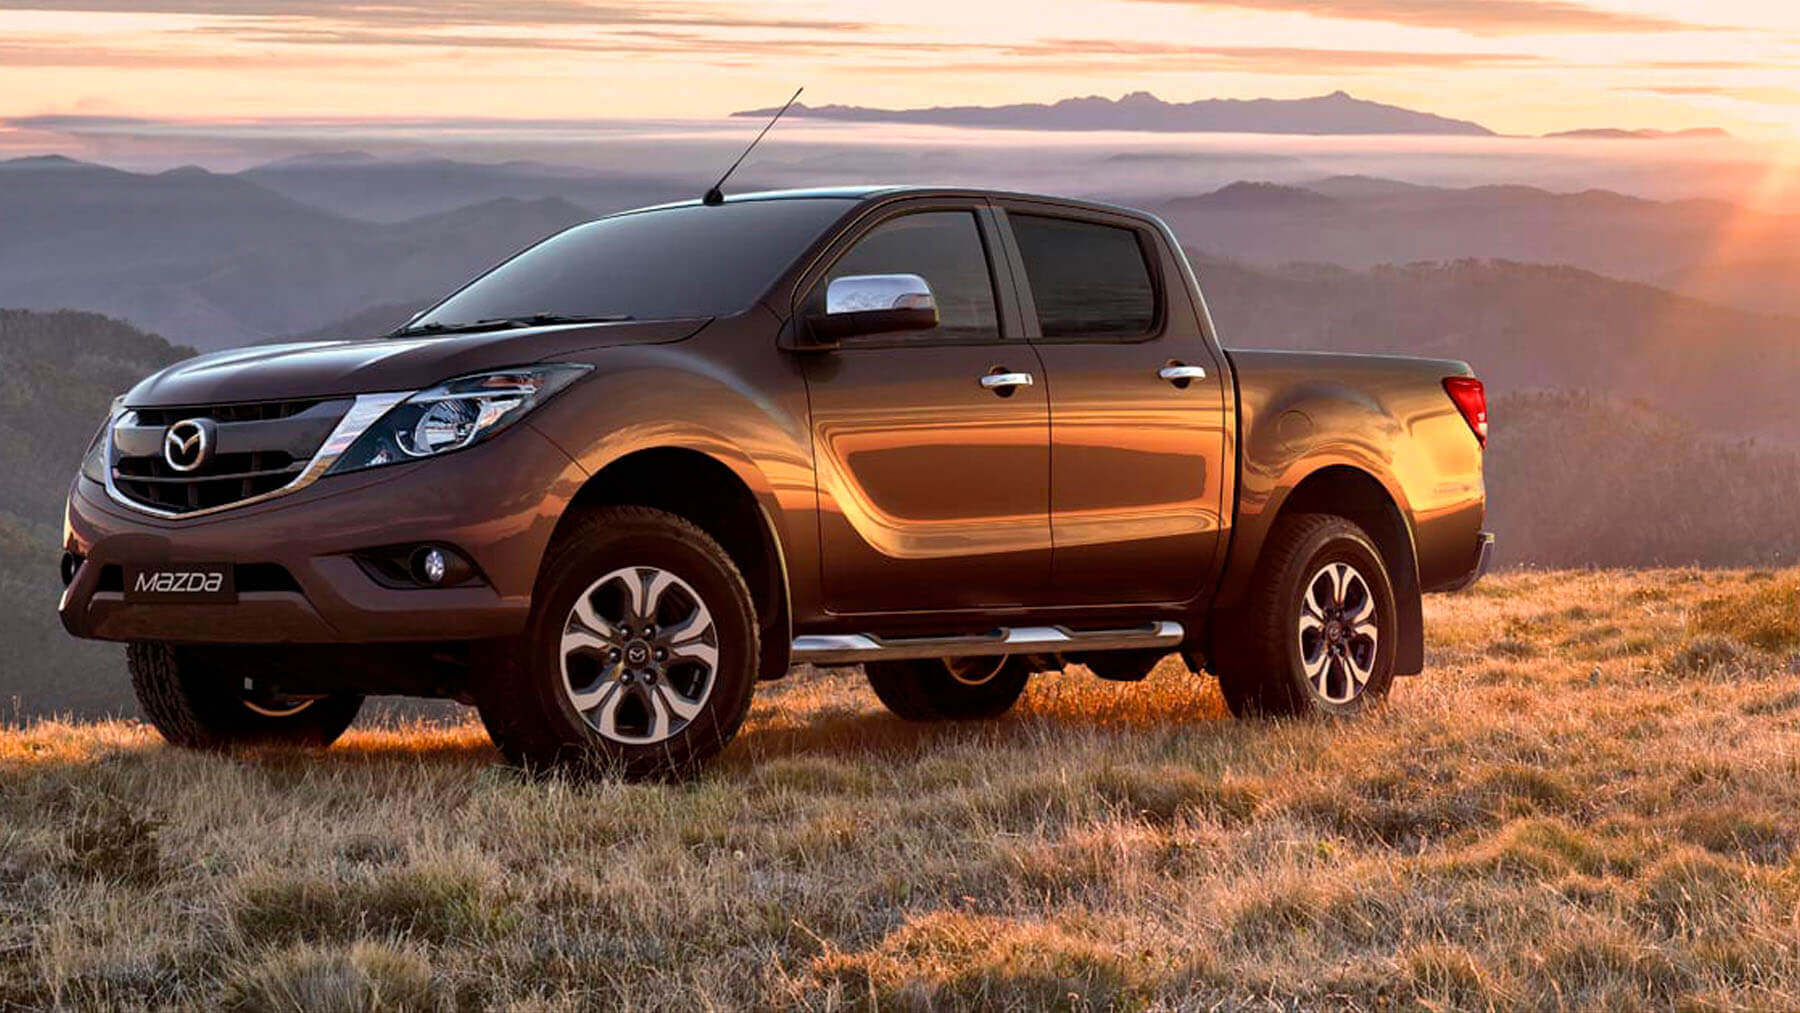 Mazda Mazda BT-50 Doble Cabina 3.2 SDX High 6AT 4x4 Diesel - Galería interior - imágen 0